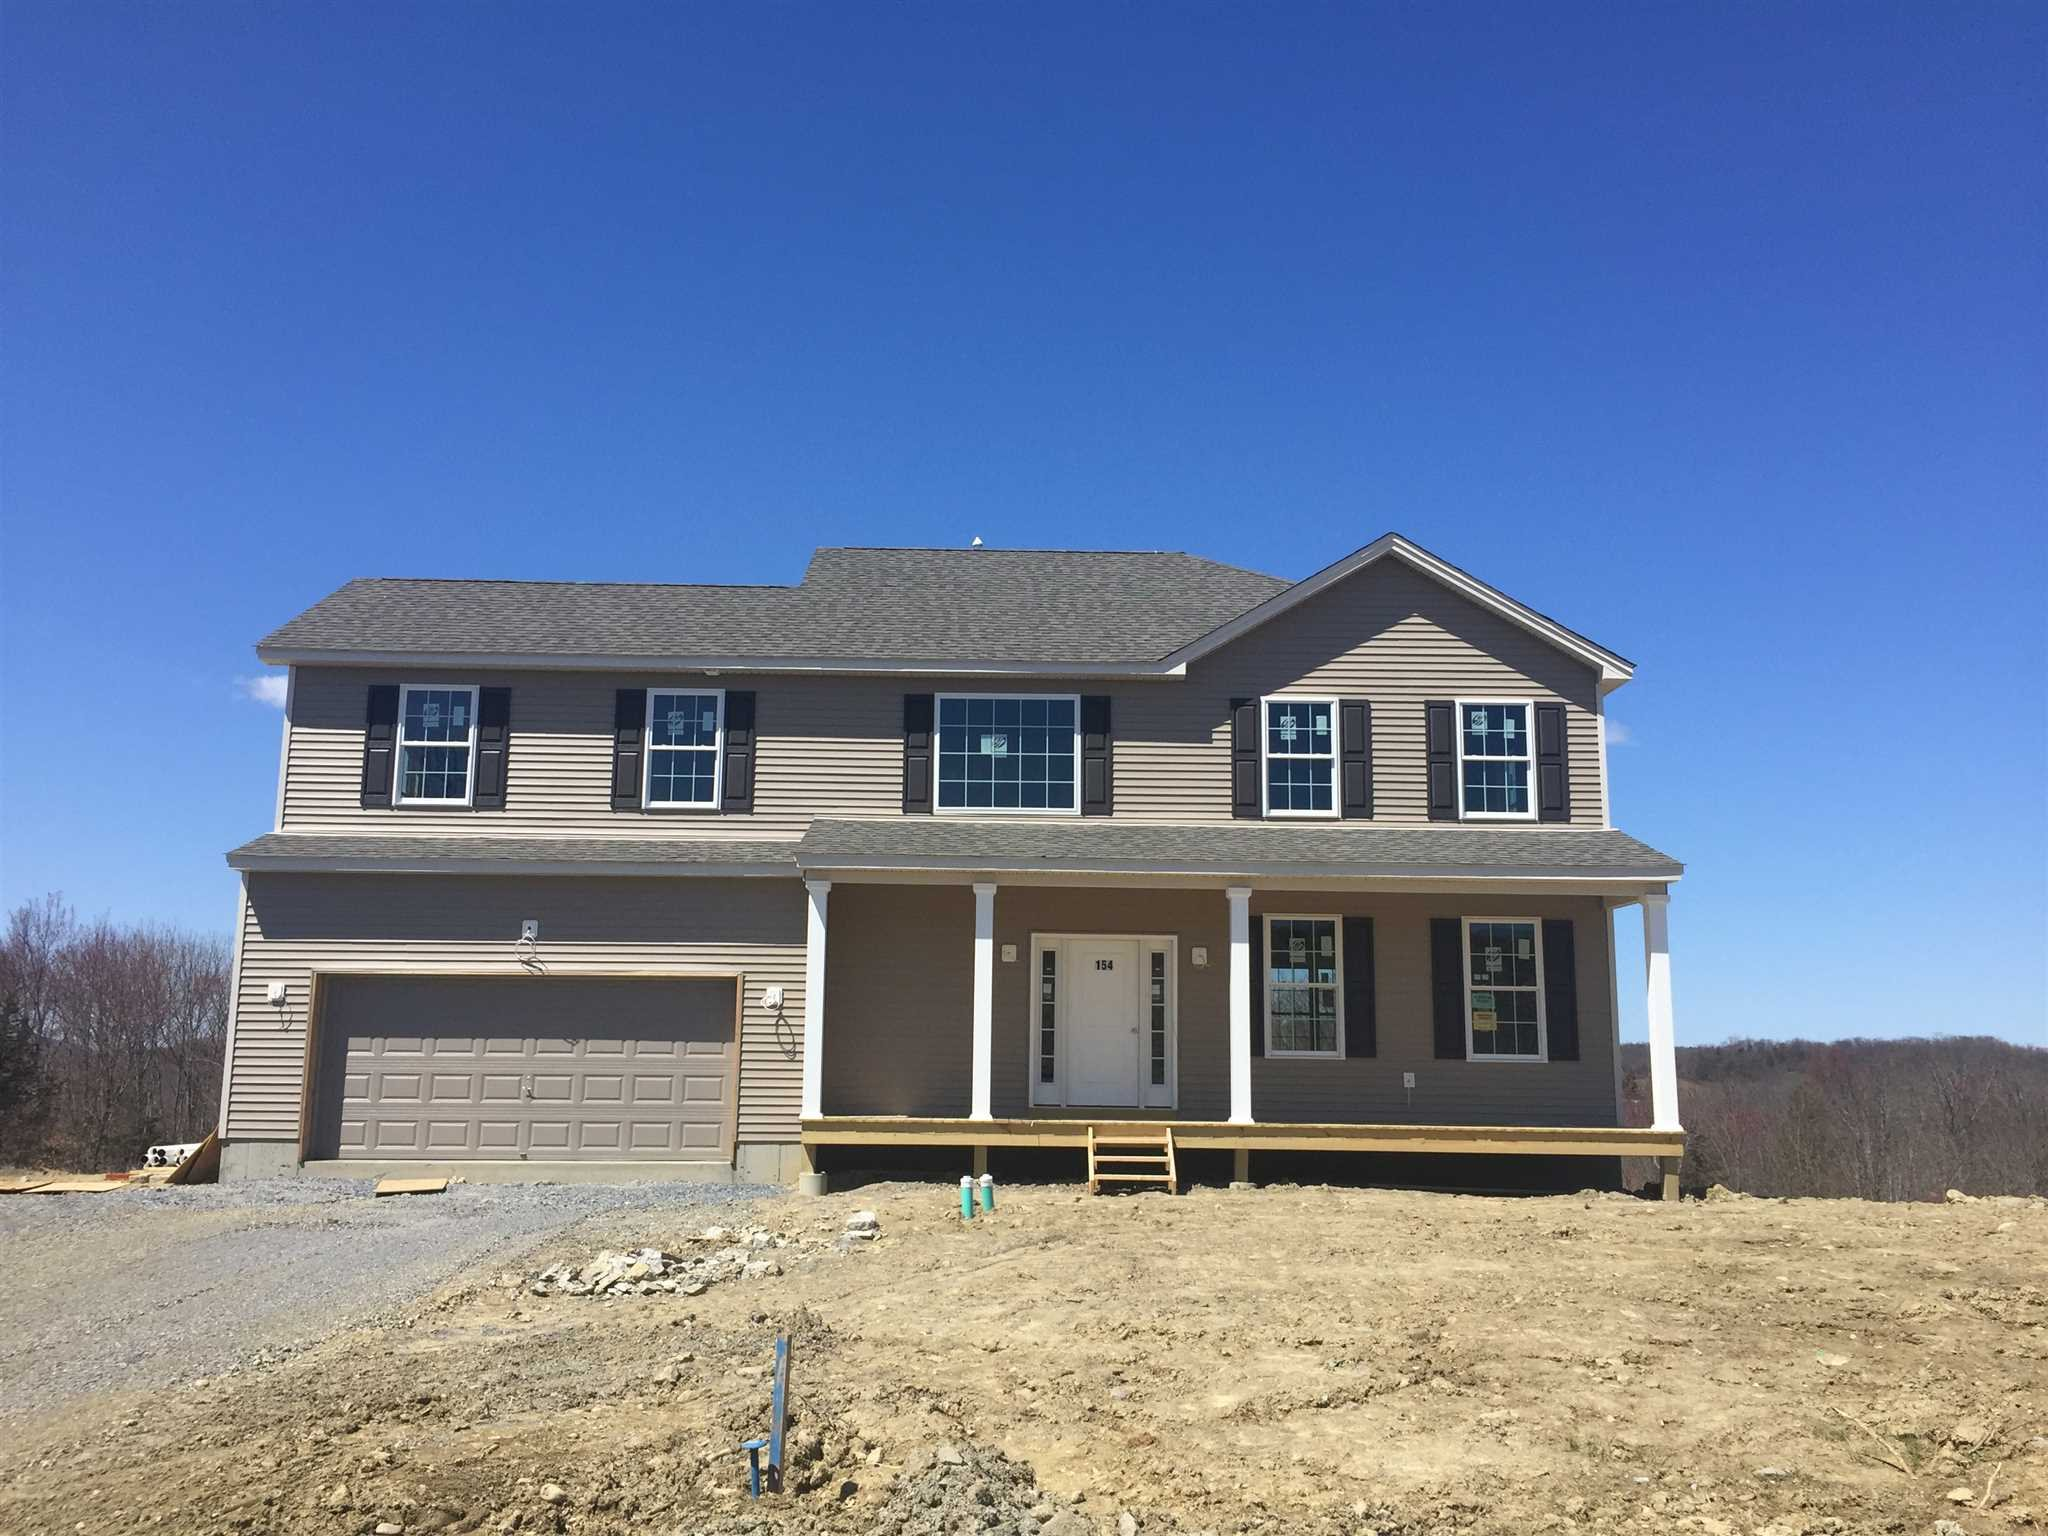 Single Family Home for Sale at 154 LOT 6 STRATFORD 154 LOT 6 STRATFORD Poughkeepsie, New York 12603 United States